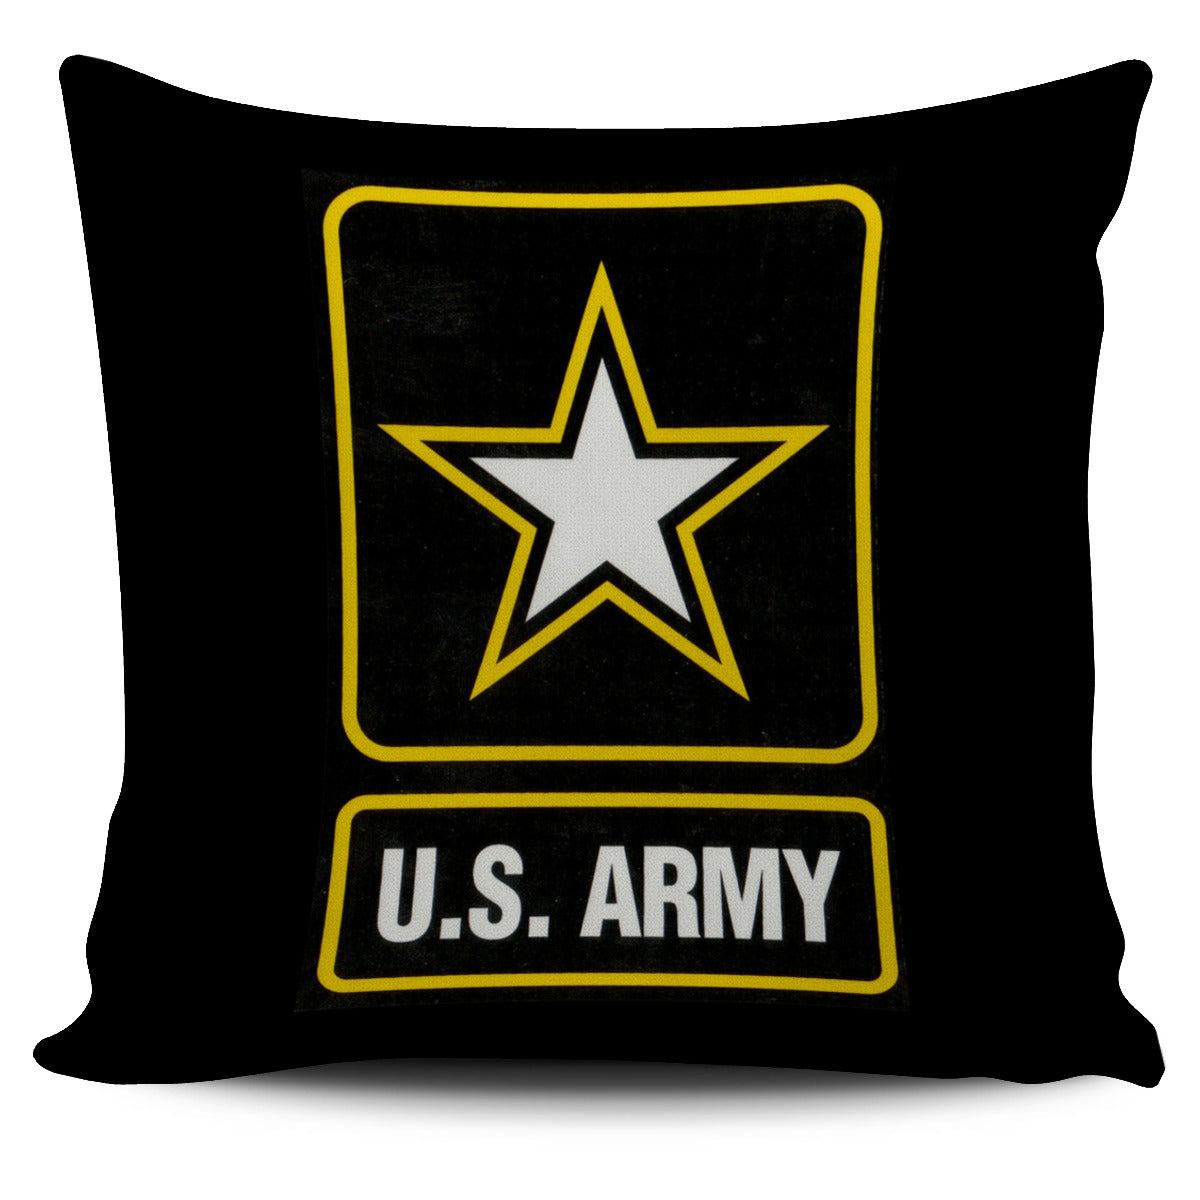 us army pillow case prw rh proudrightwinger com  font used in us army logo